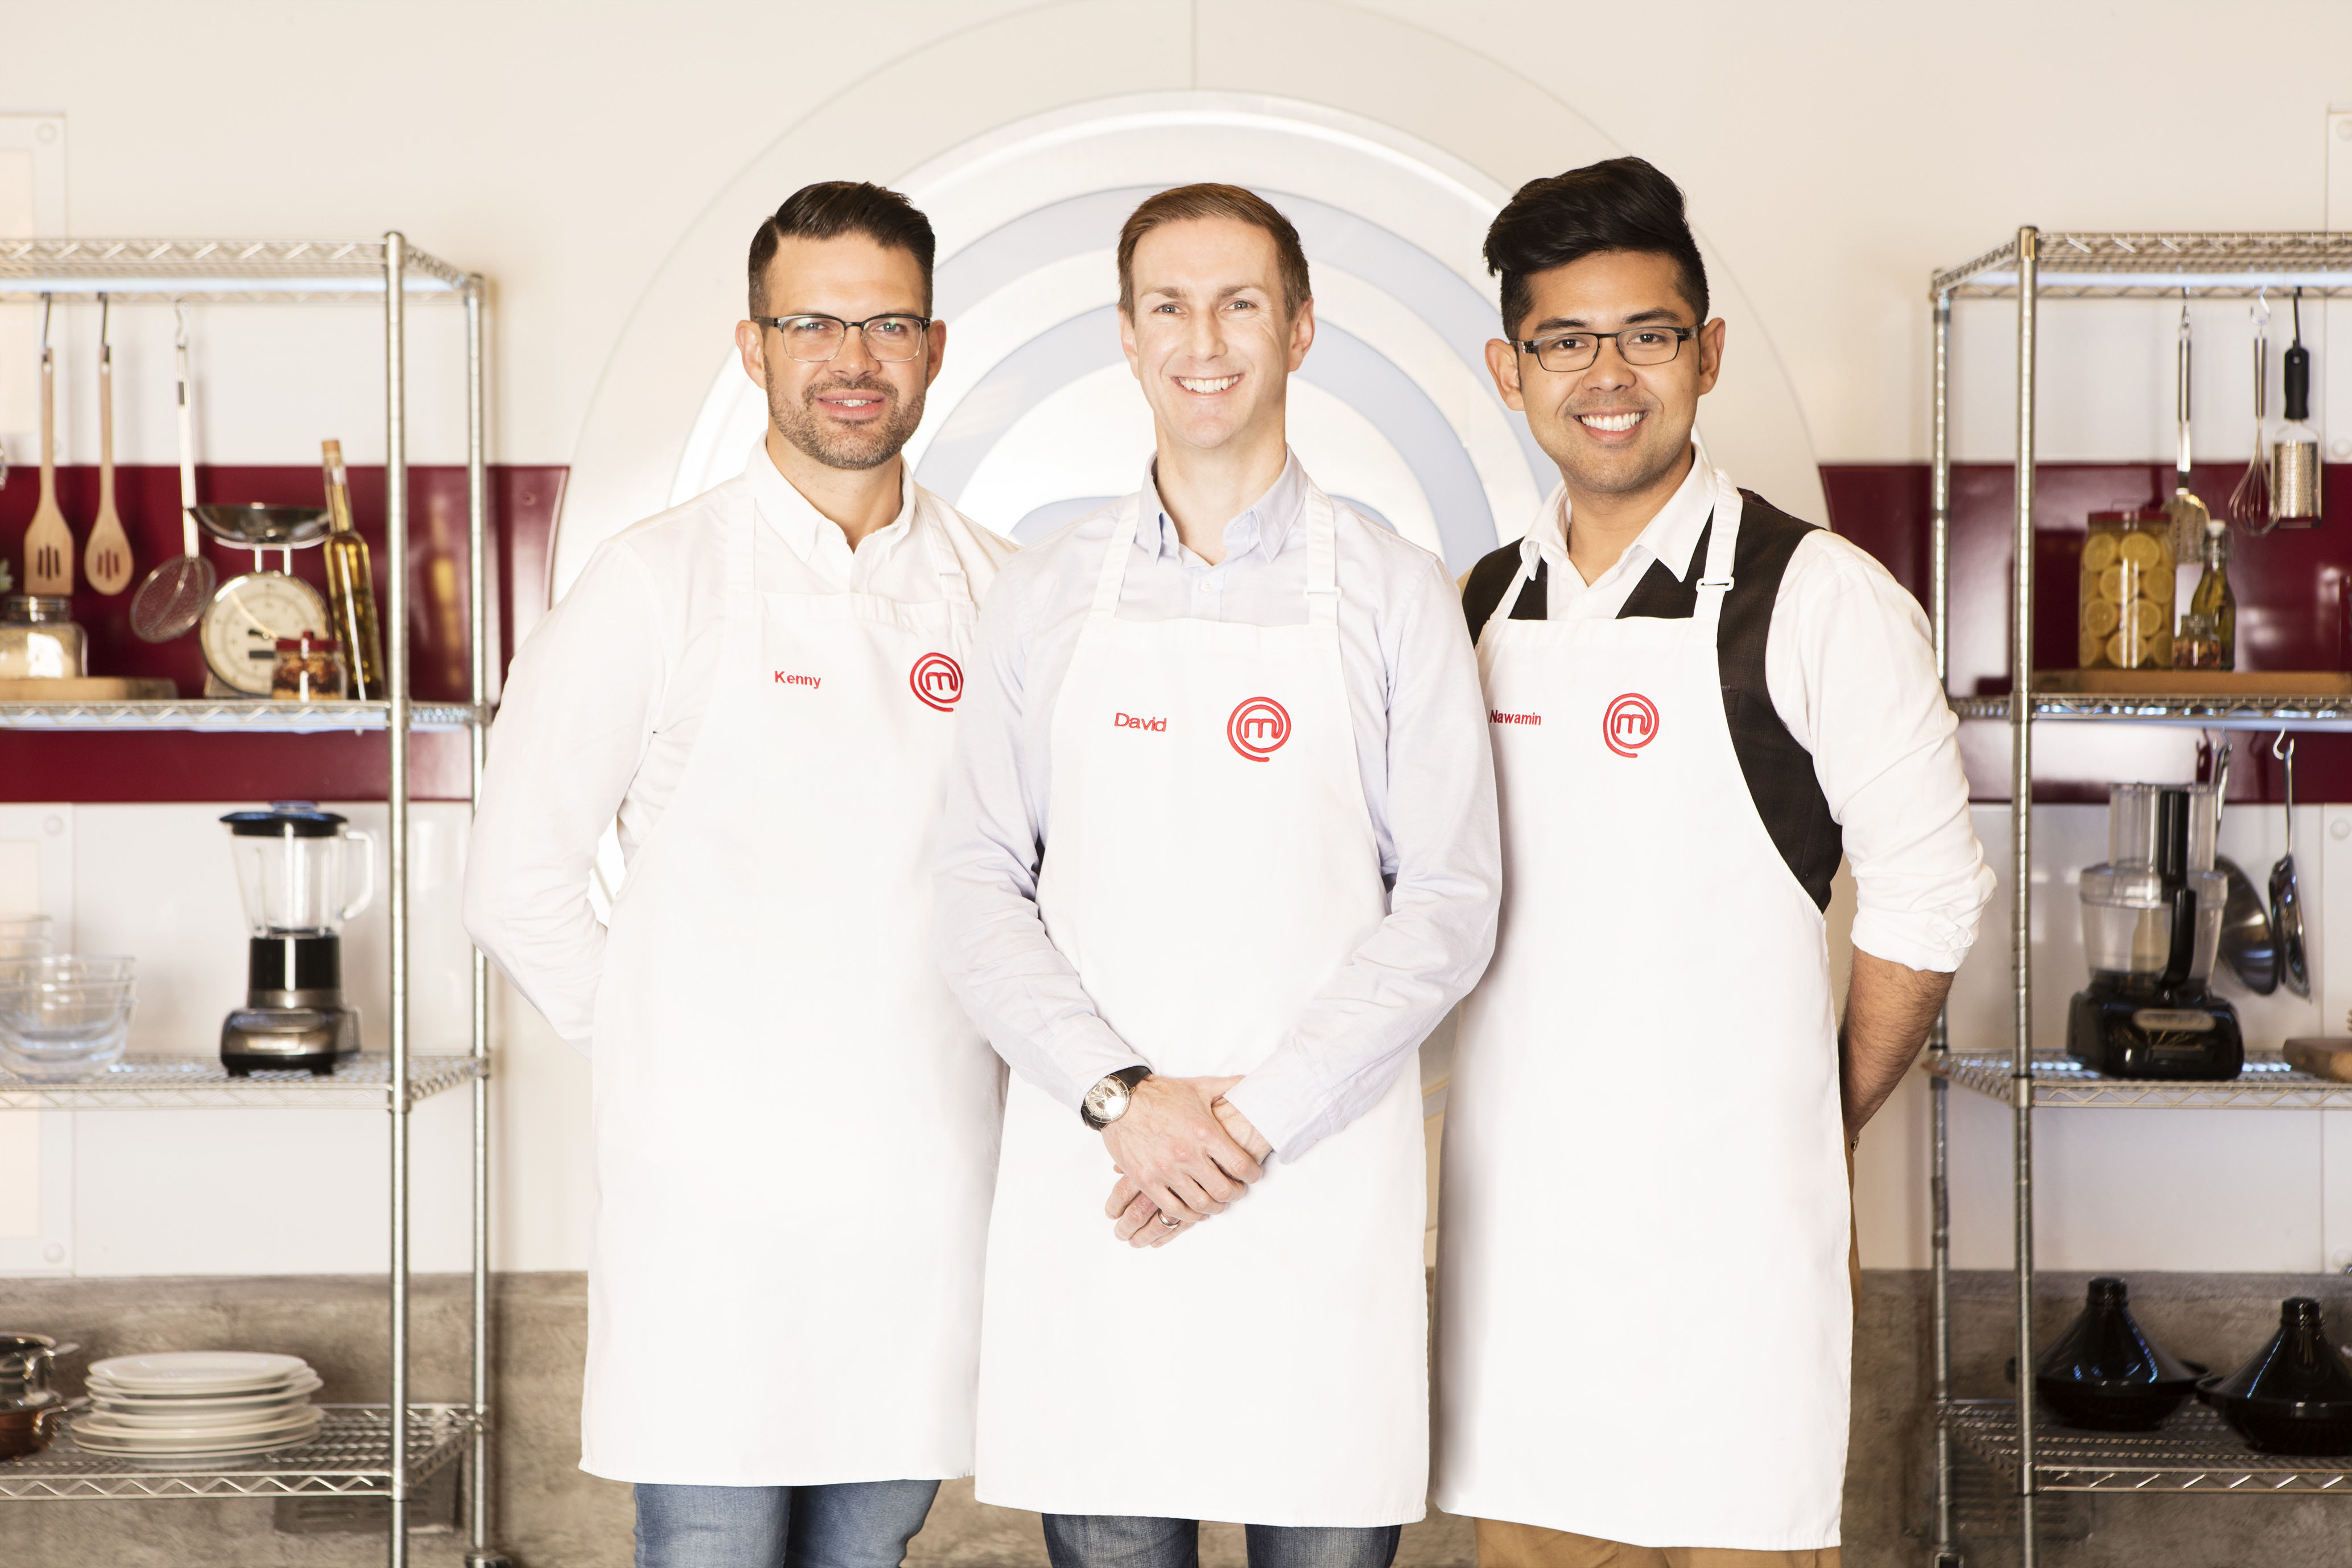 WARNING: Embargoed for publication until 21:01:00 on 12/04/2018 - Programme Name: Masterchef  - TX: 13/04/2018 - Episode: The Final 3 (No. The Final 3) - Picture Shows: **STRICTLY EMBARGOED UNTIL 21:01HRS ON THURSDAY 12TH APRIL 2018** (L-R) Kenny, David, Nawamin - (C) Shine TV Ltd - Photographer: Production  BBC, TL